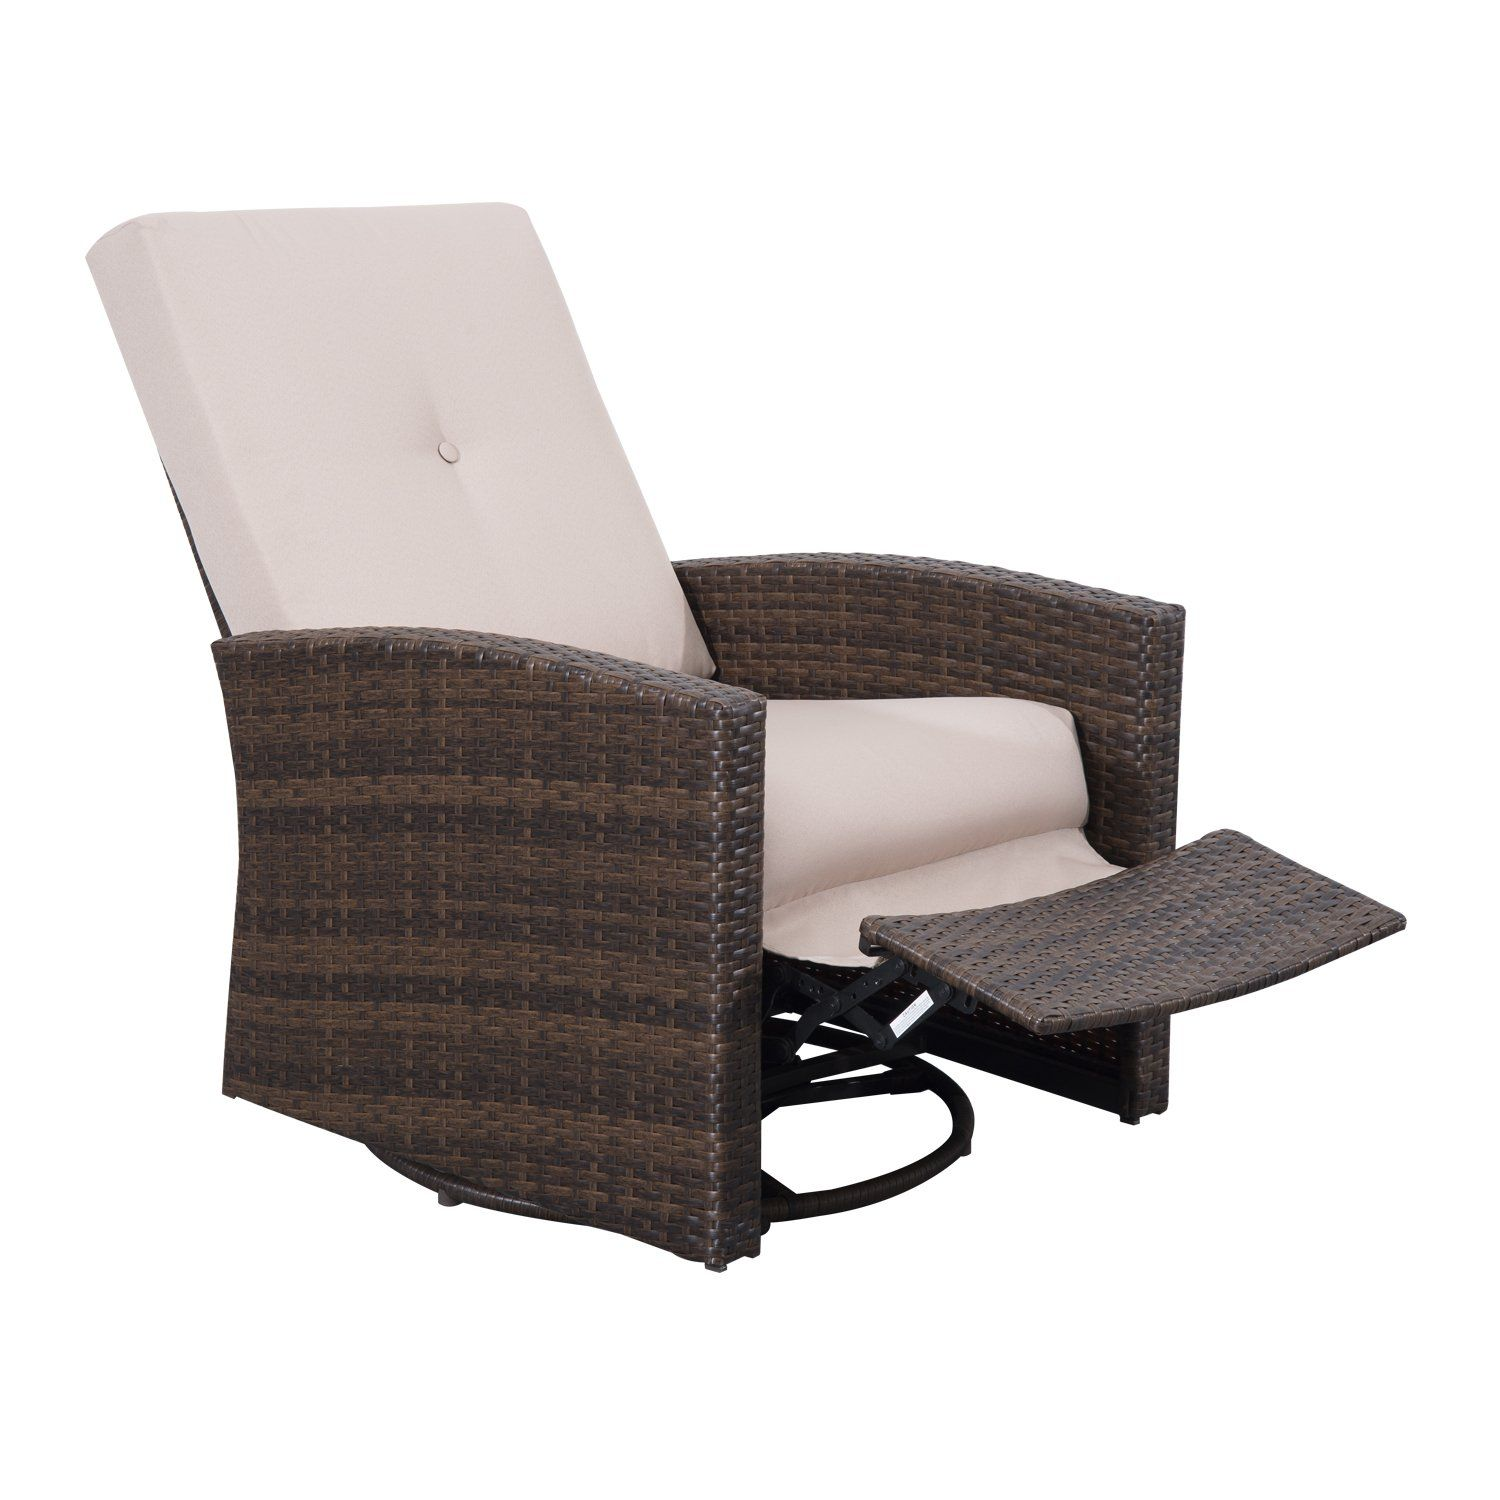 Robot Check Outdoor Recliner Wicker Patio Chairs Deck Chairs